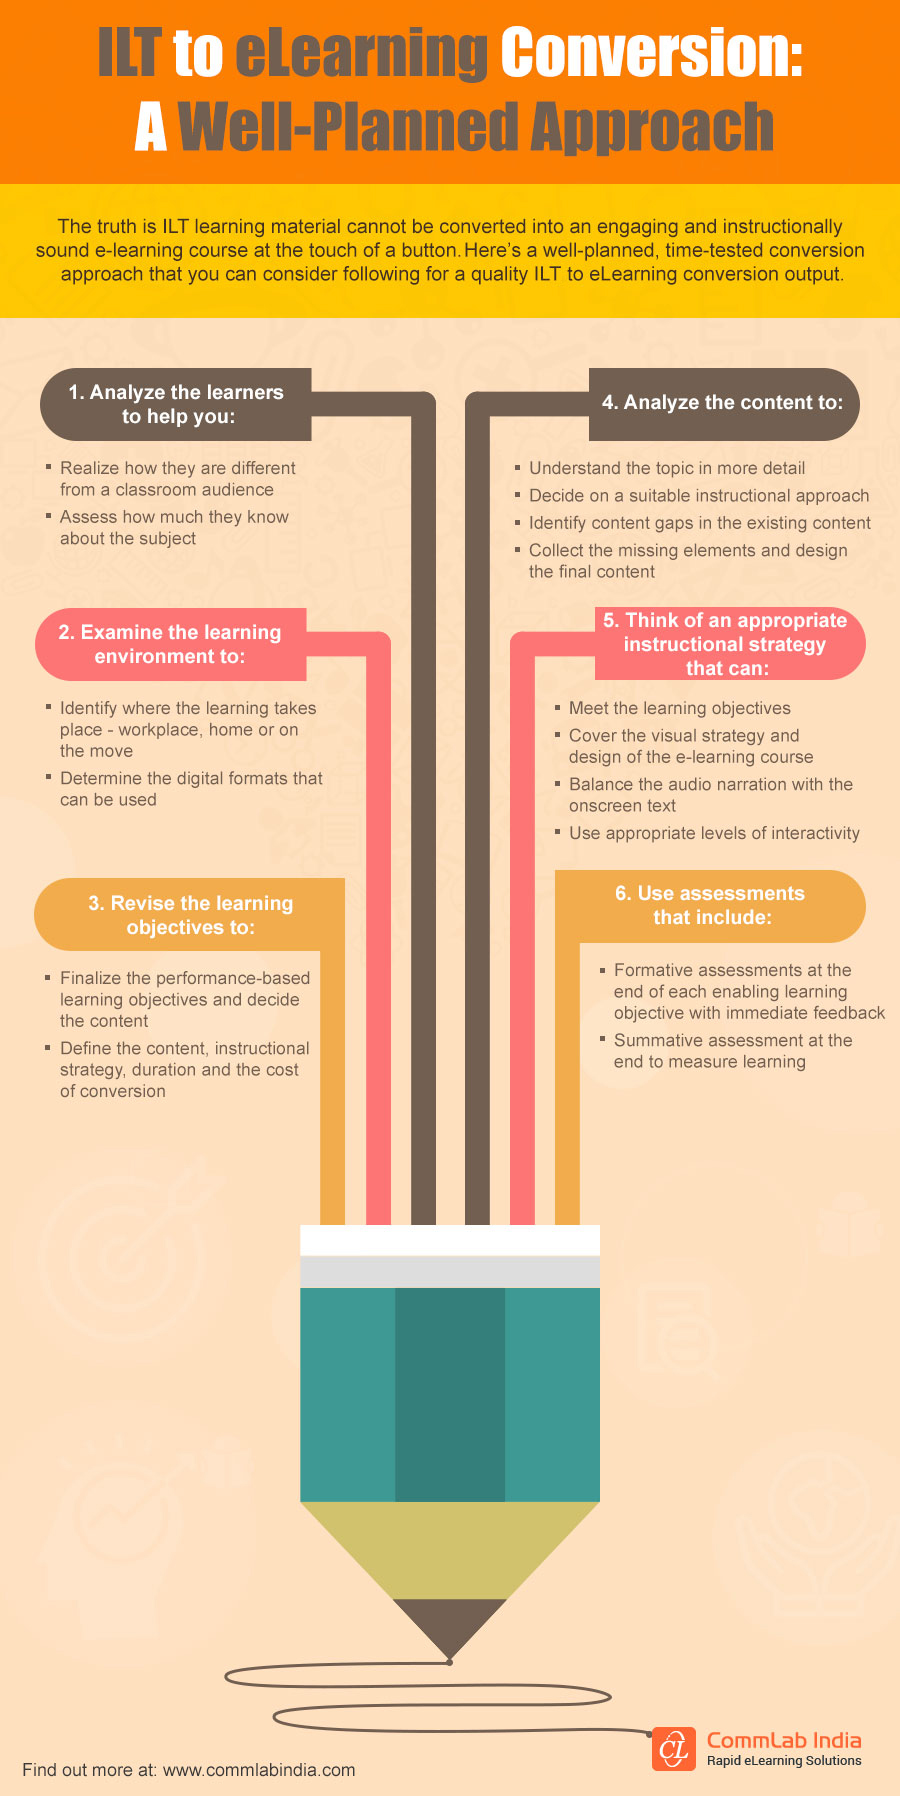 ILT to eLearning Conversion: A Well-Planned Approach [Infographic]